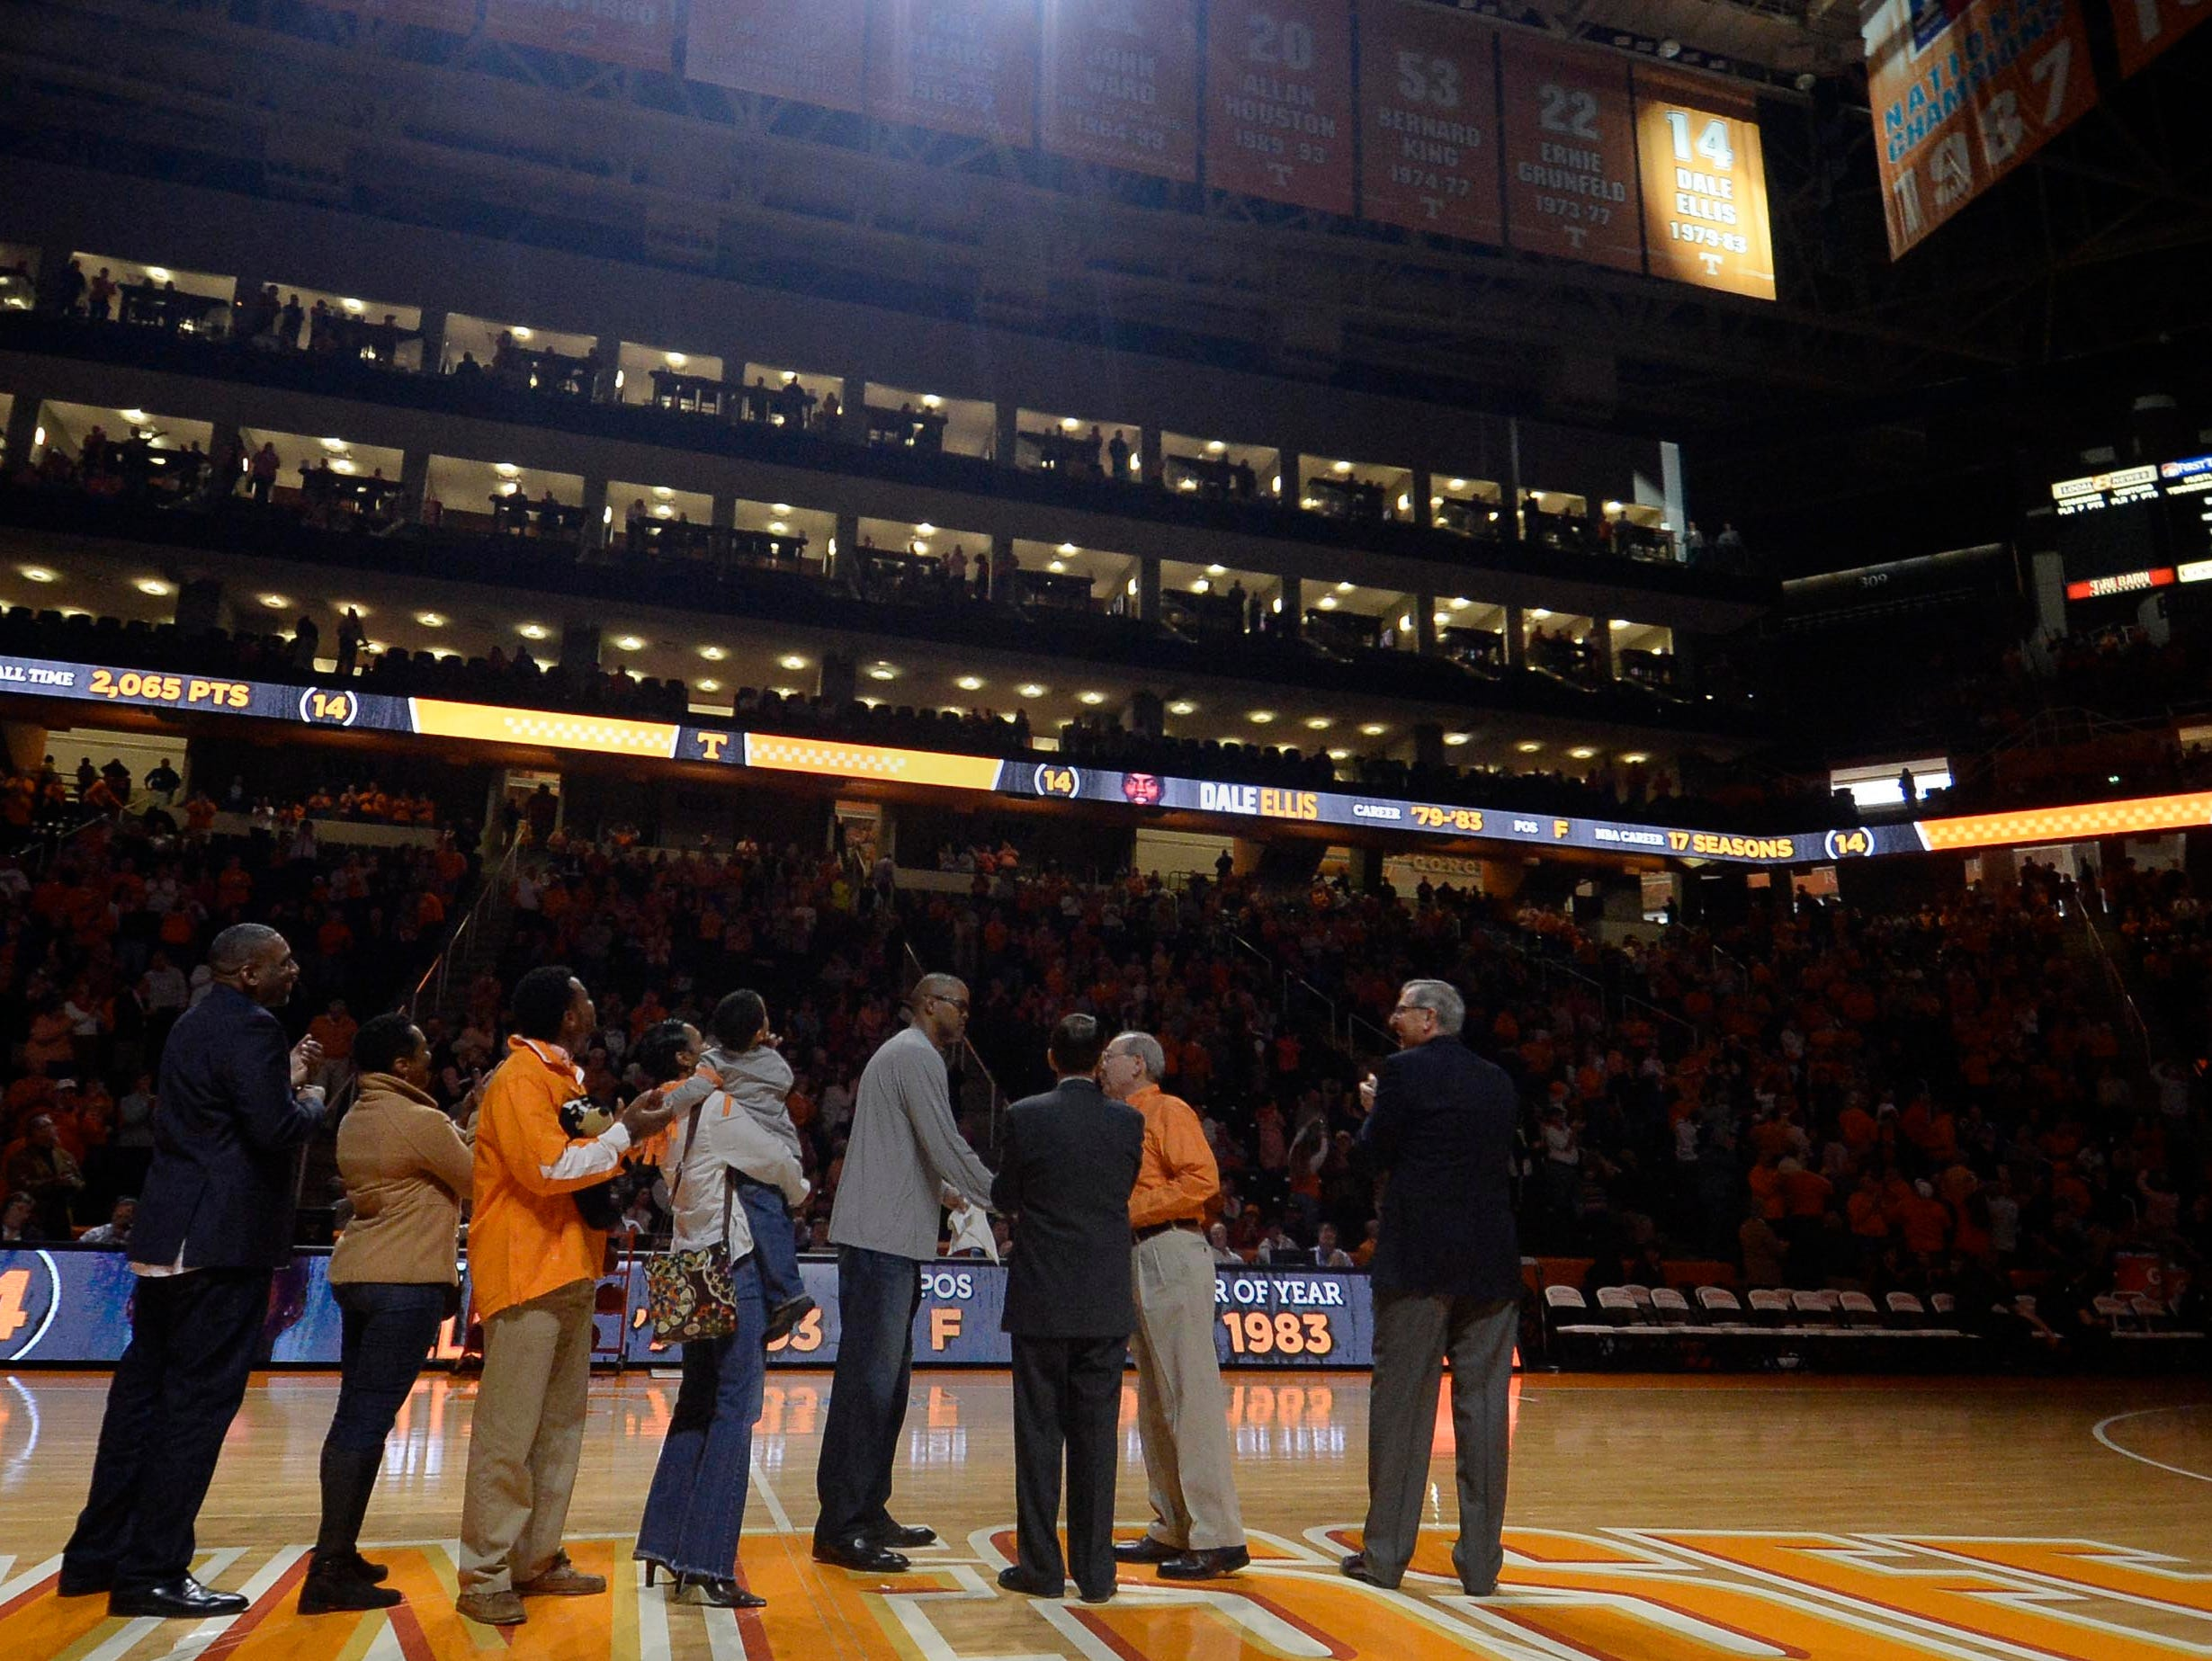 Former Tennessee basketball player Dale Ellis, center in grey, shakes hands with officials on court after having his #14 jersey retired in Thompson-Boling Arena before the Vols' game against Vanderbilt in Knoxville on Saturday, March 1, 2014.